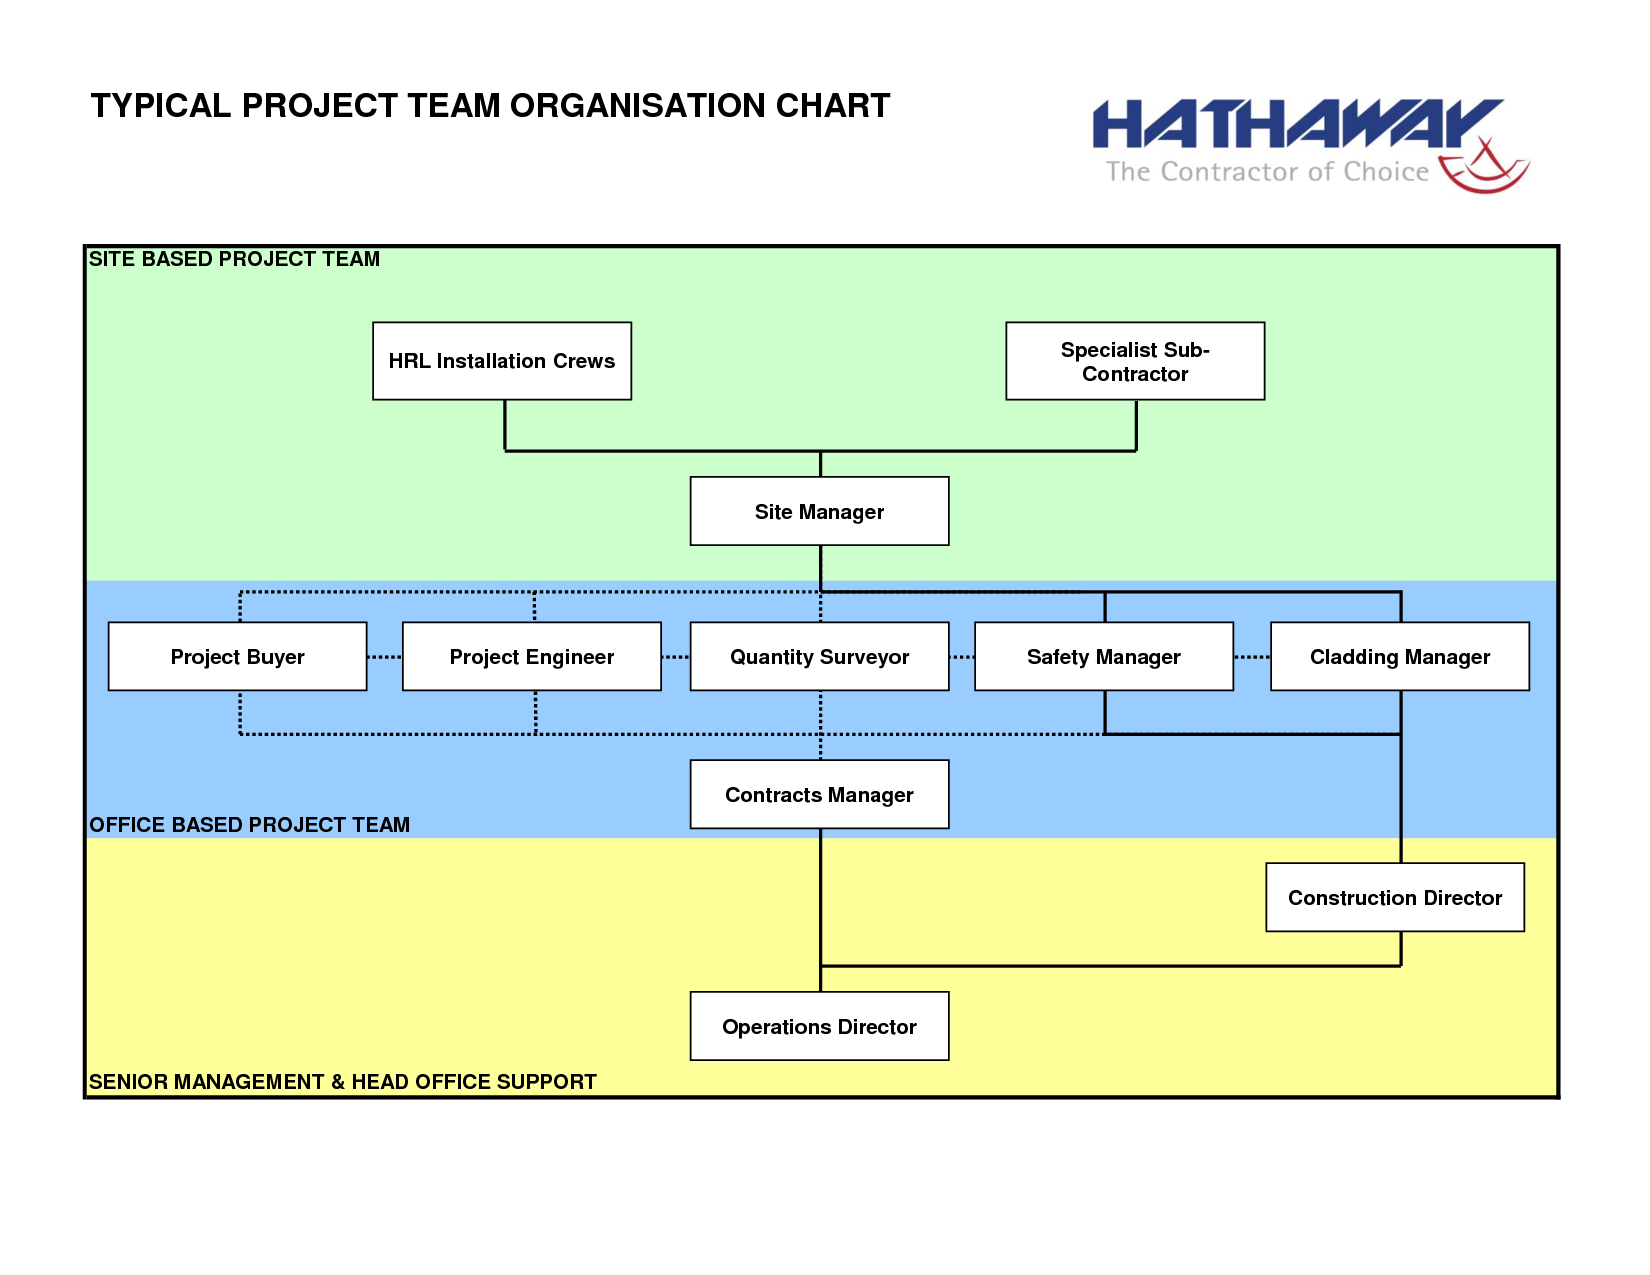 Construction organizational chart template project management organisation also best templates images on pinterest rh